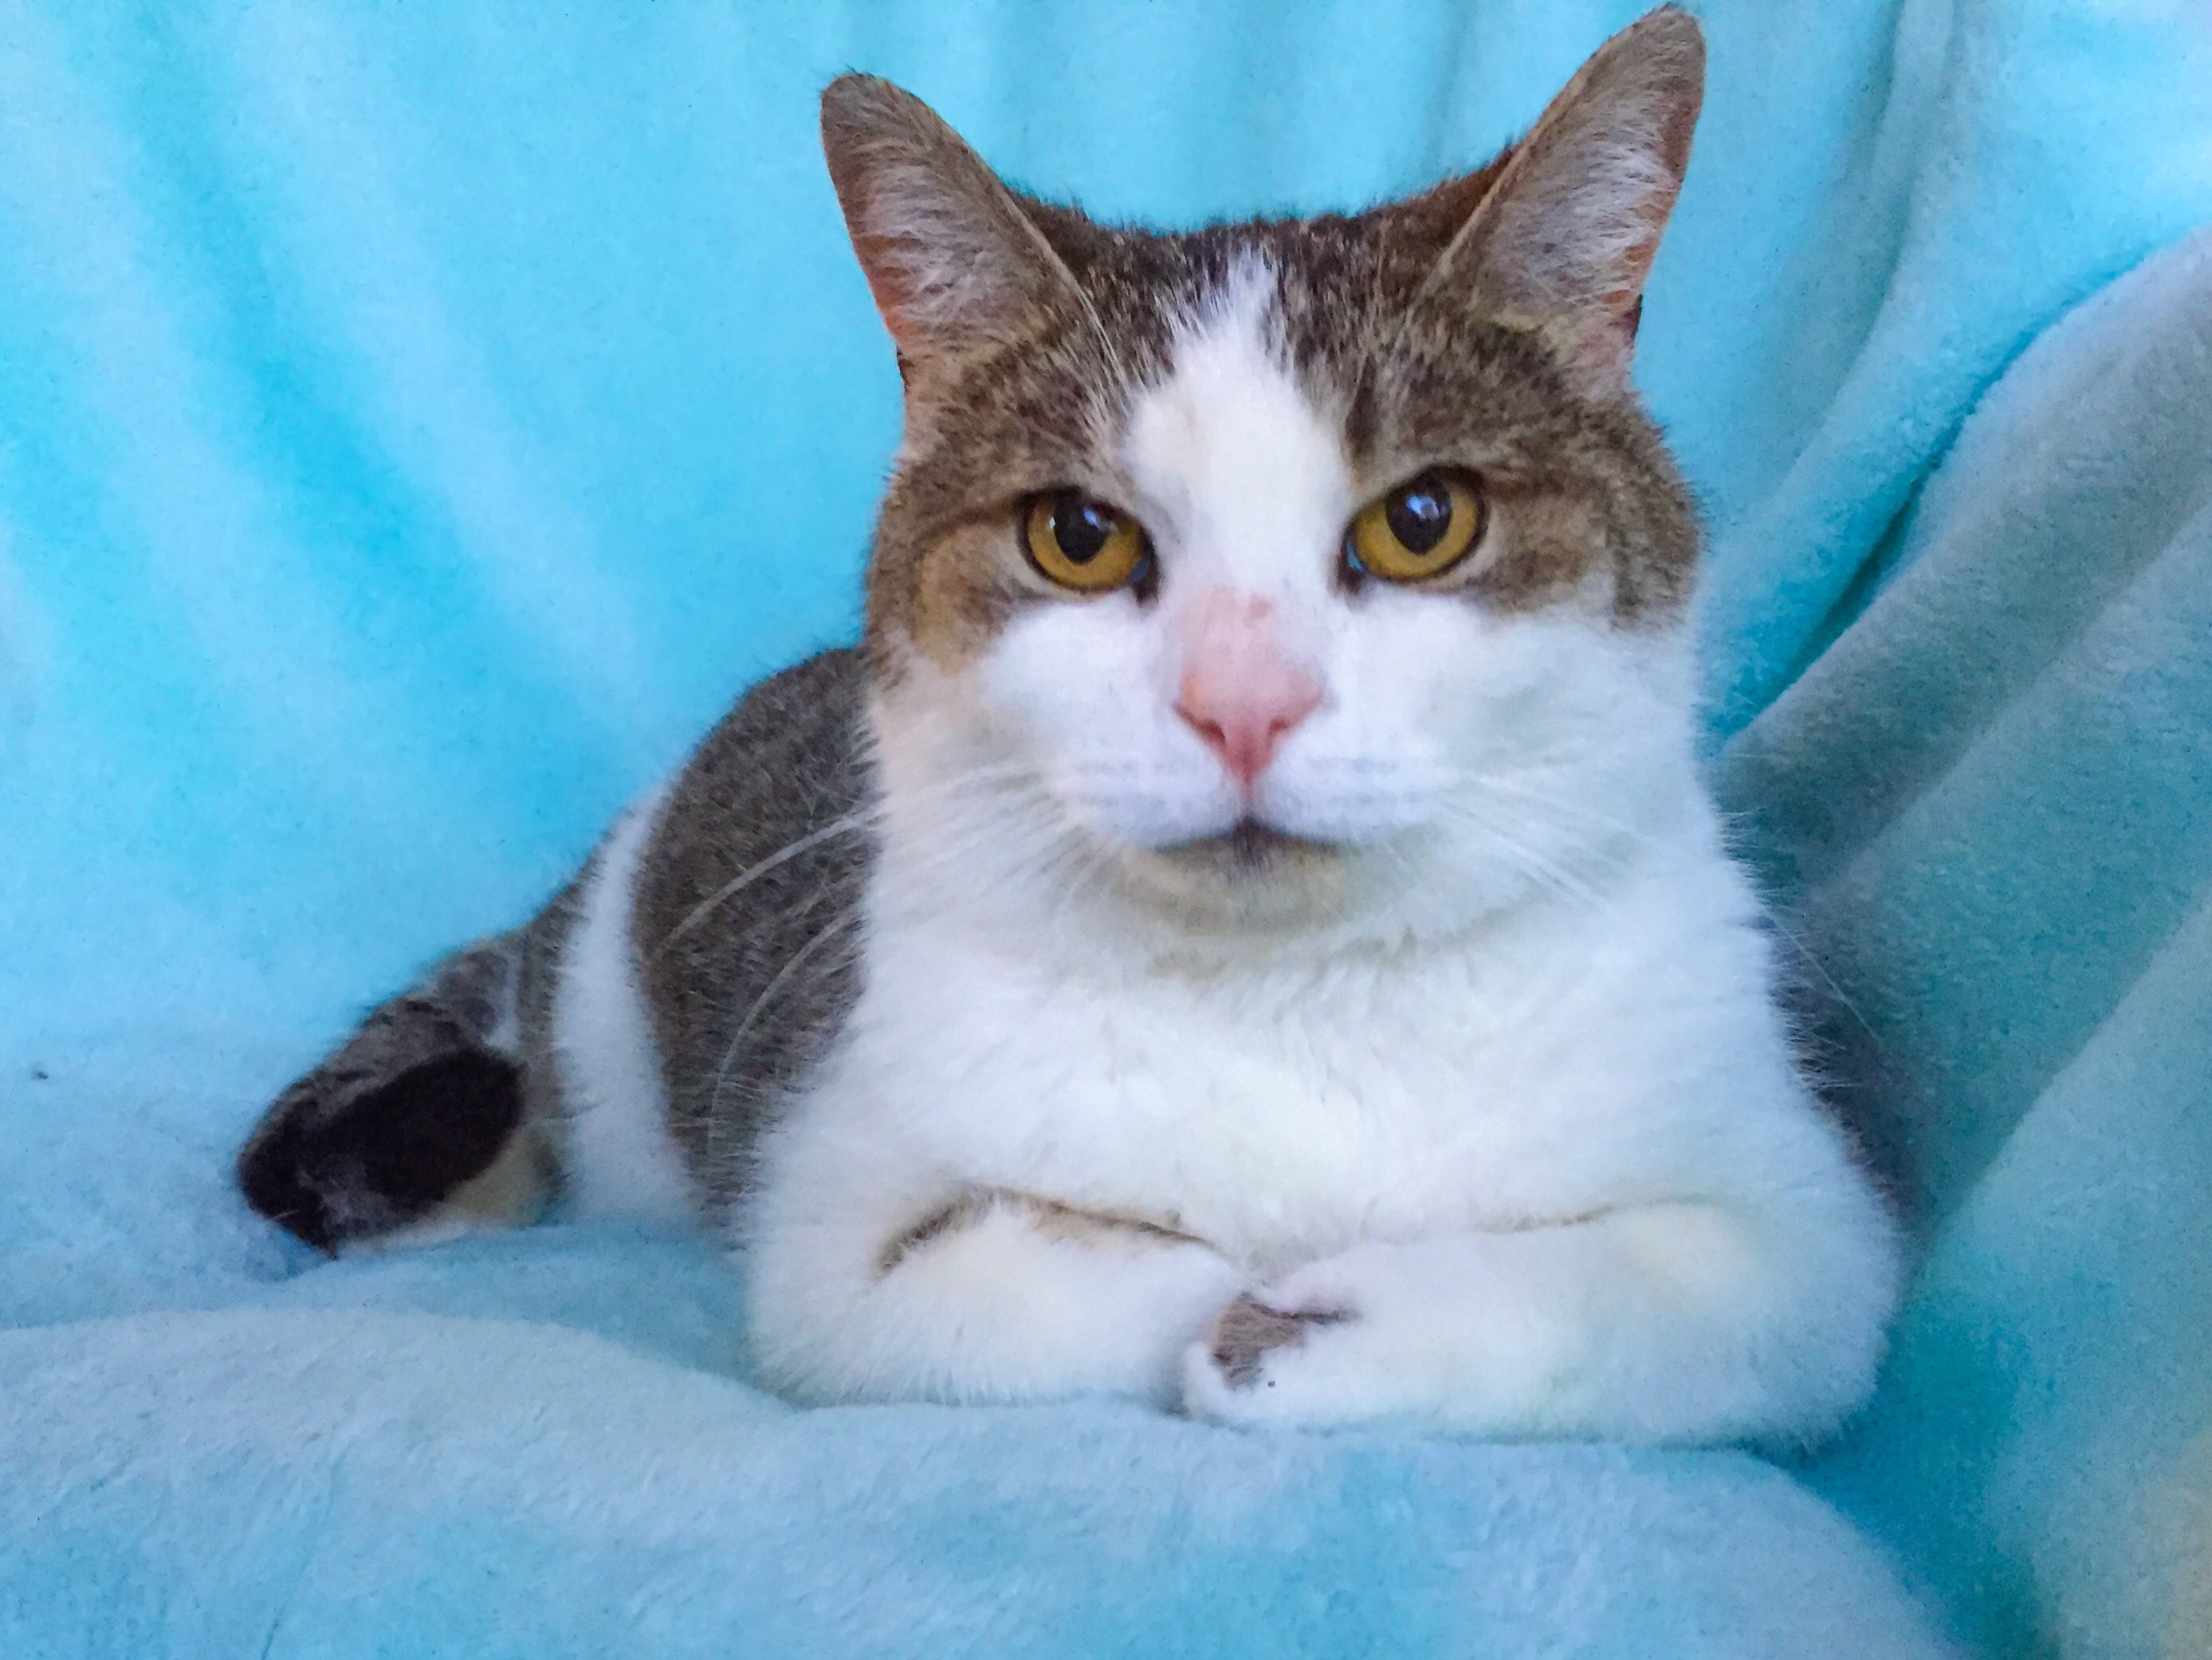 Emory came to us after her owner passed away and she was placed outside.  She is an indoor cat ...read more about Emory